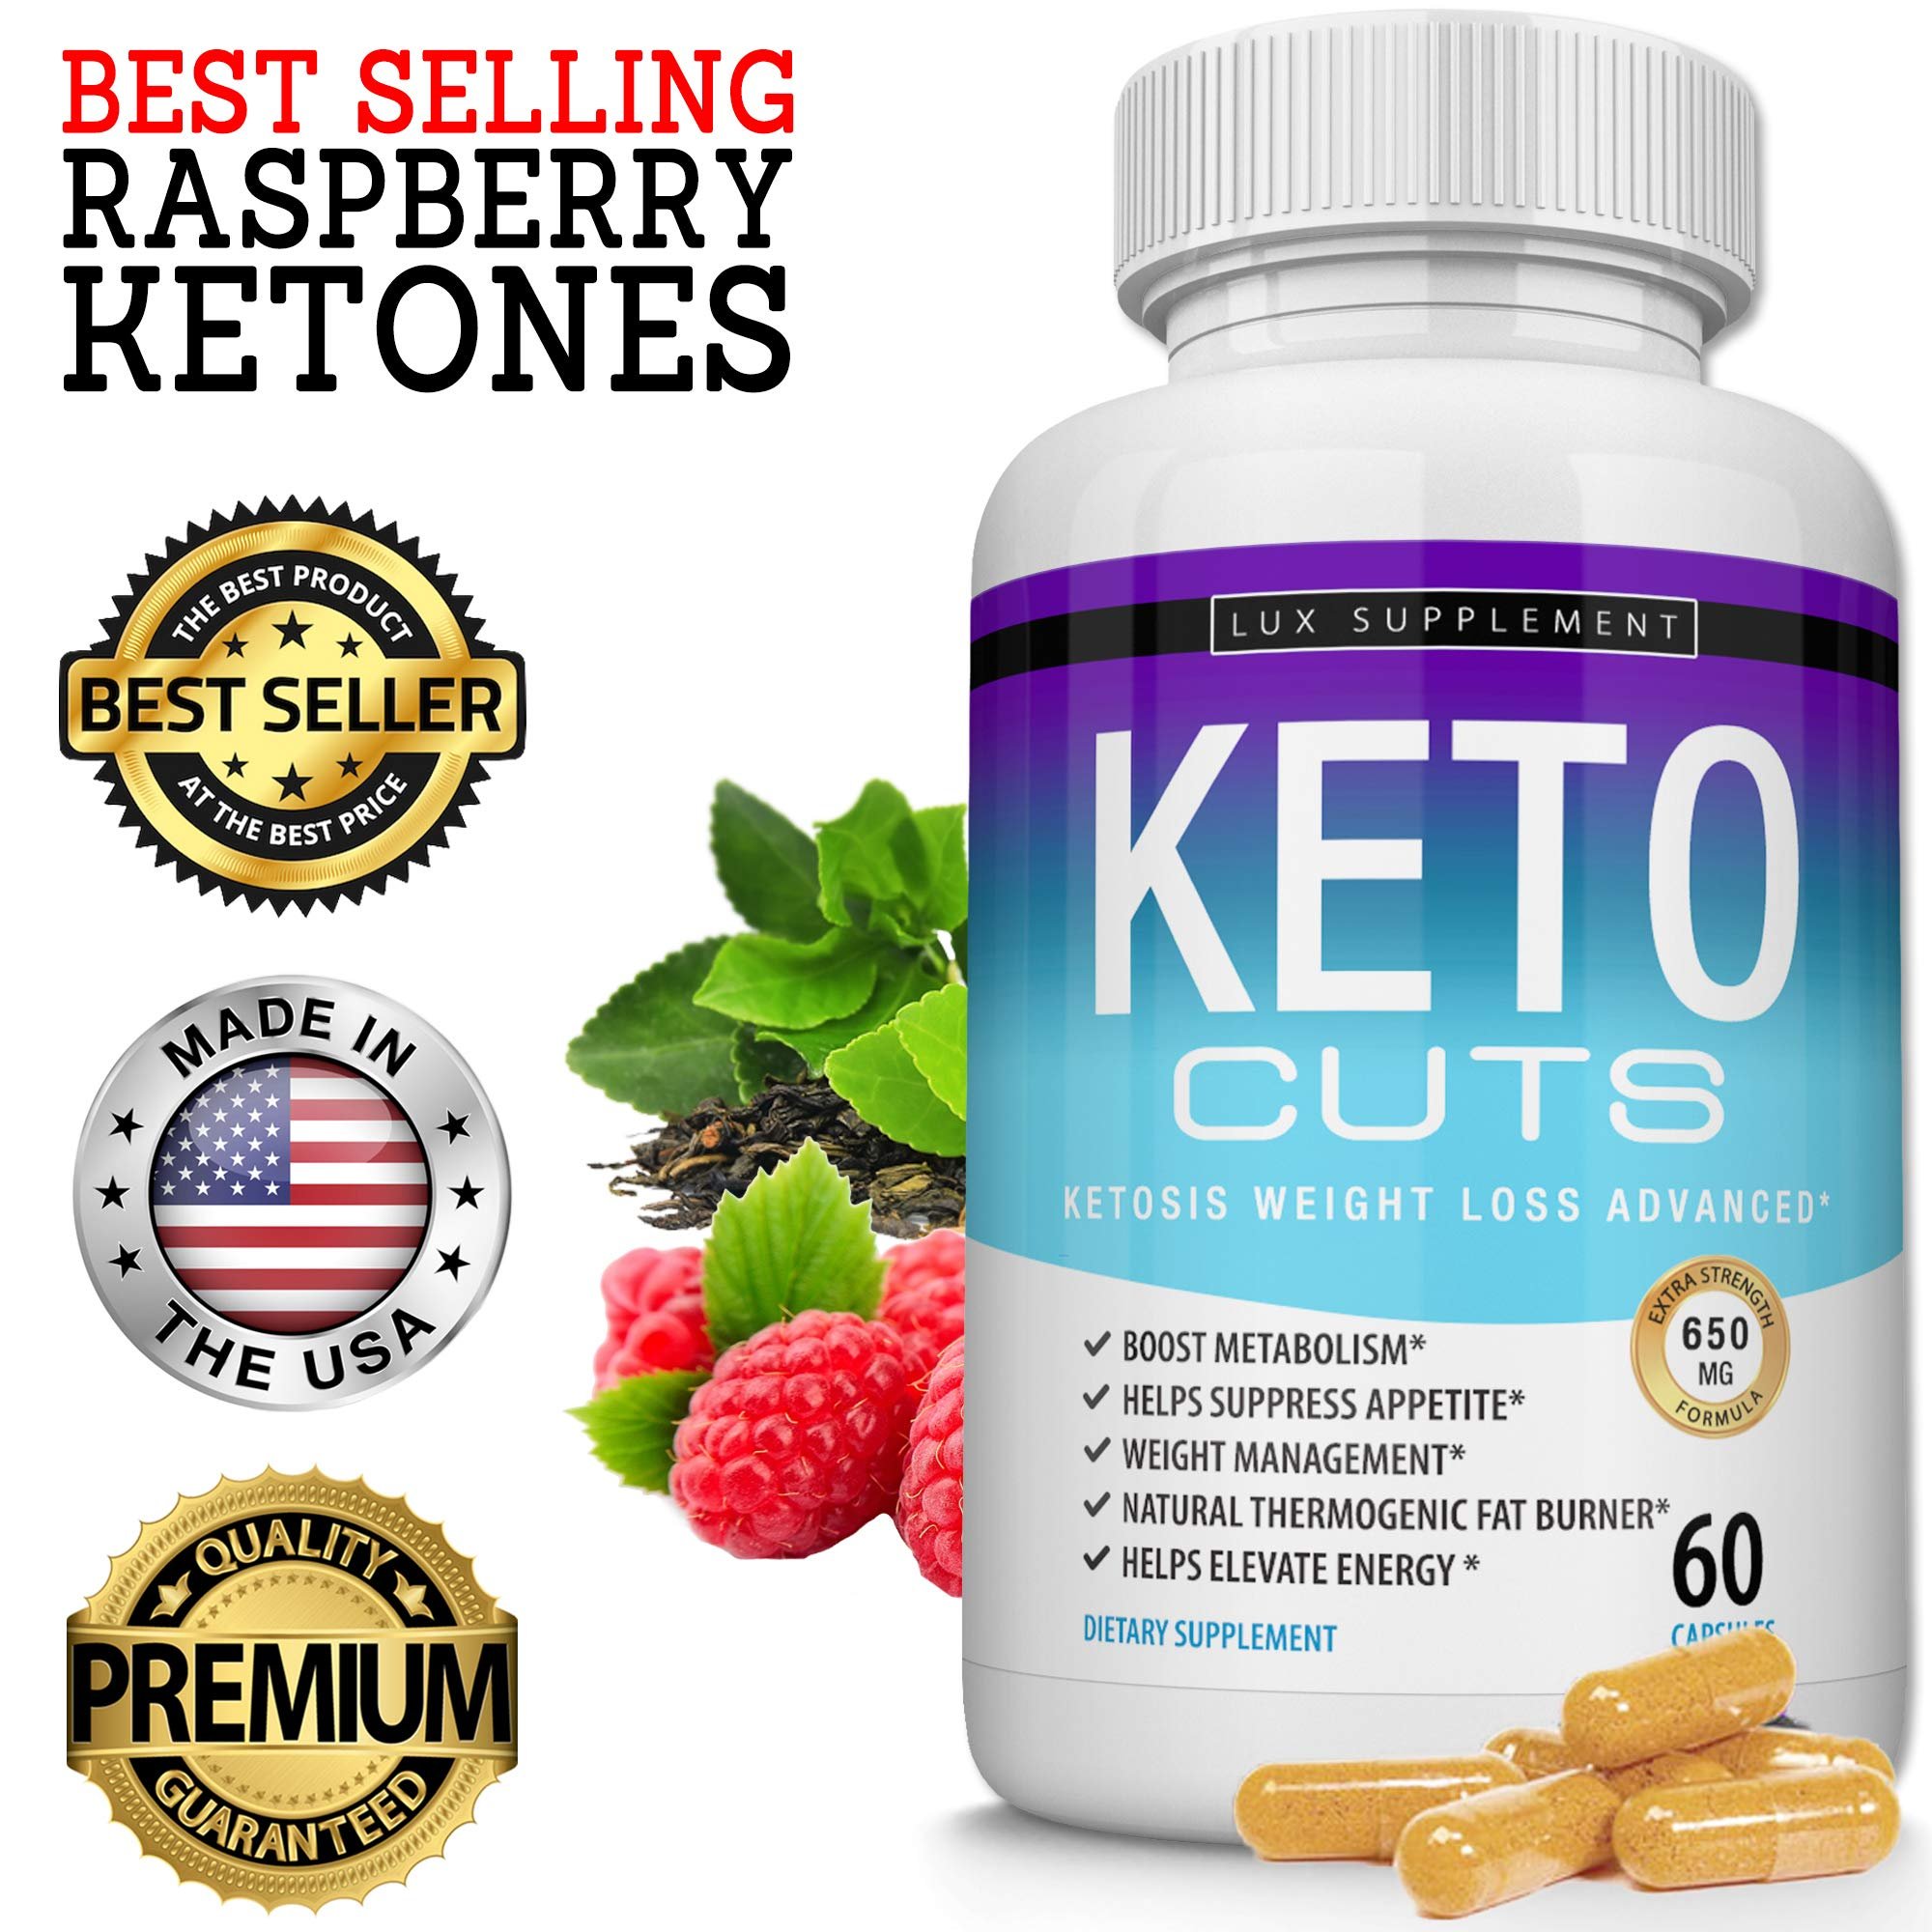 Keto Cuts Pills Ketosis Weight Loss Advanced - Best Ultra Fat Burner Using Ketone and Ketogenic Diet, Boost Metabolism and Energy While Burning Fat, Men Women, 60 Capsules Lux Supplement by Lux Supplement (Image #2)